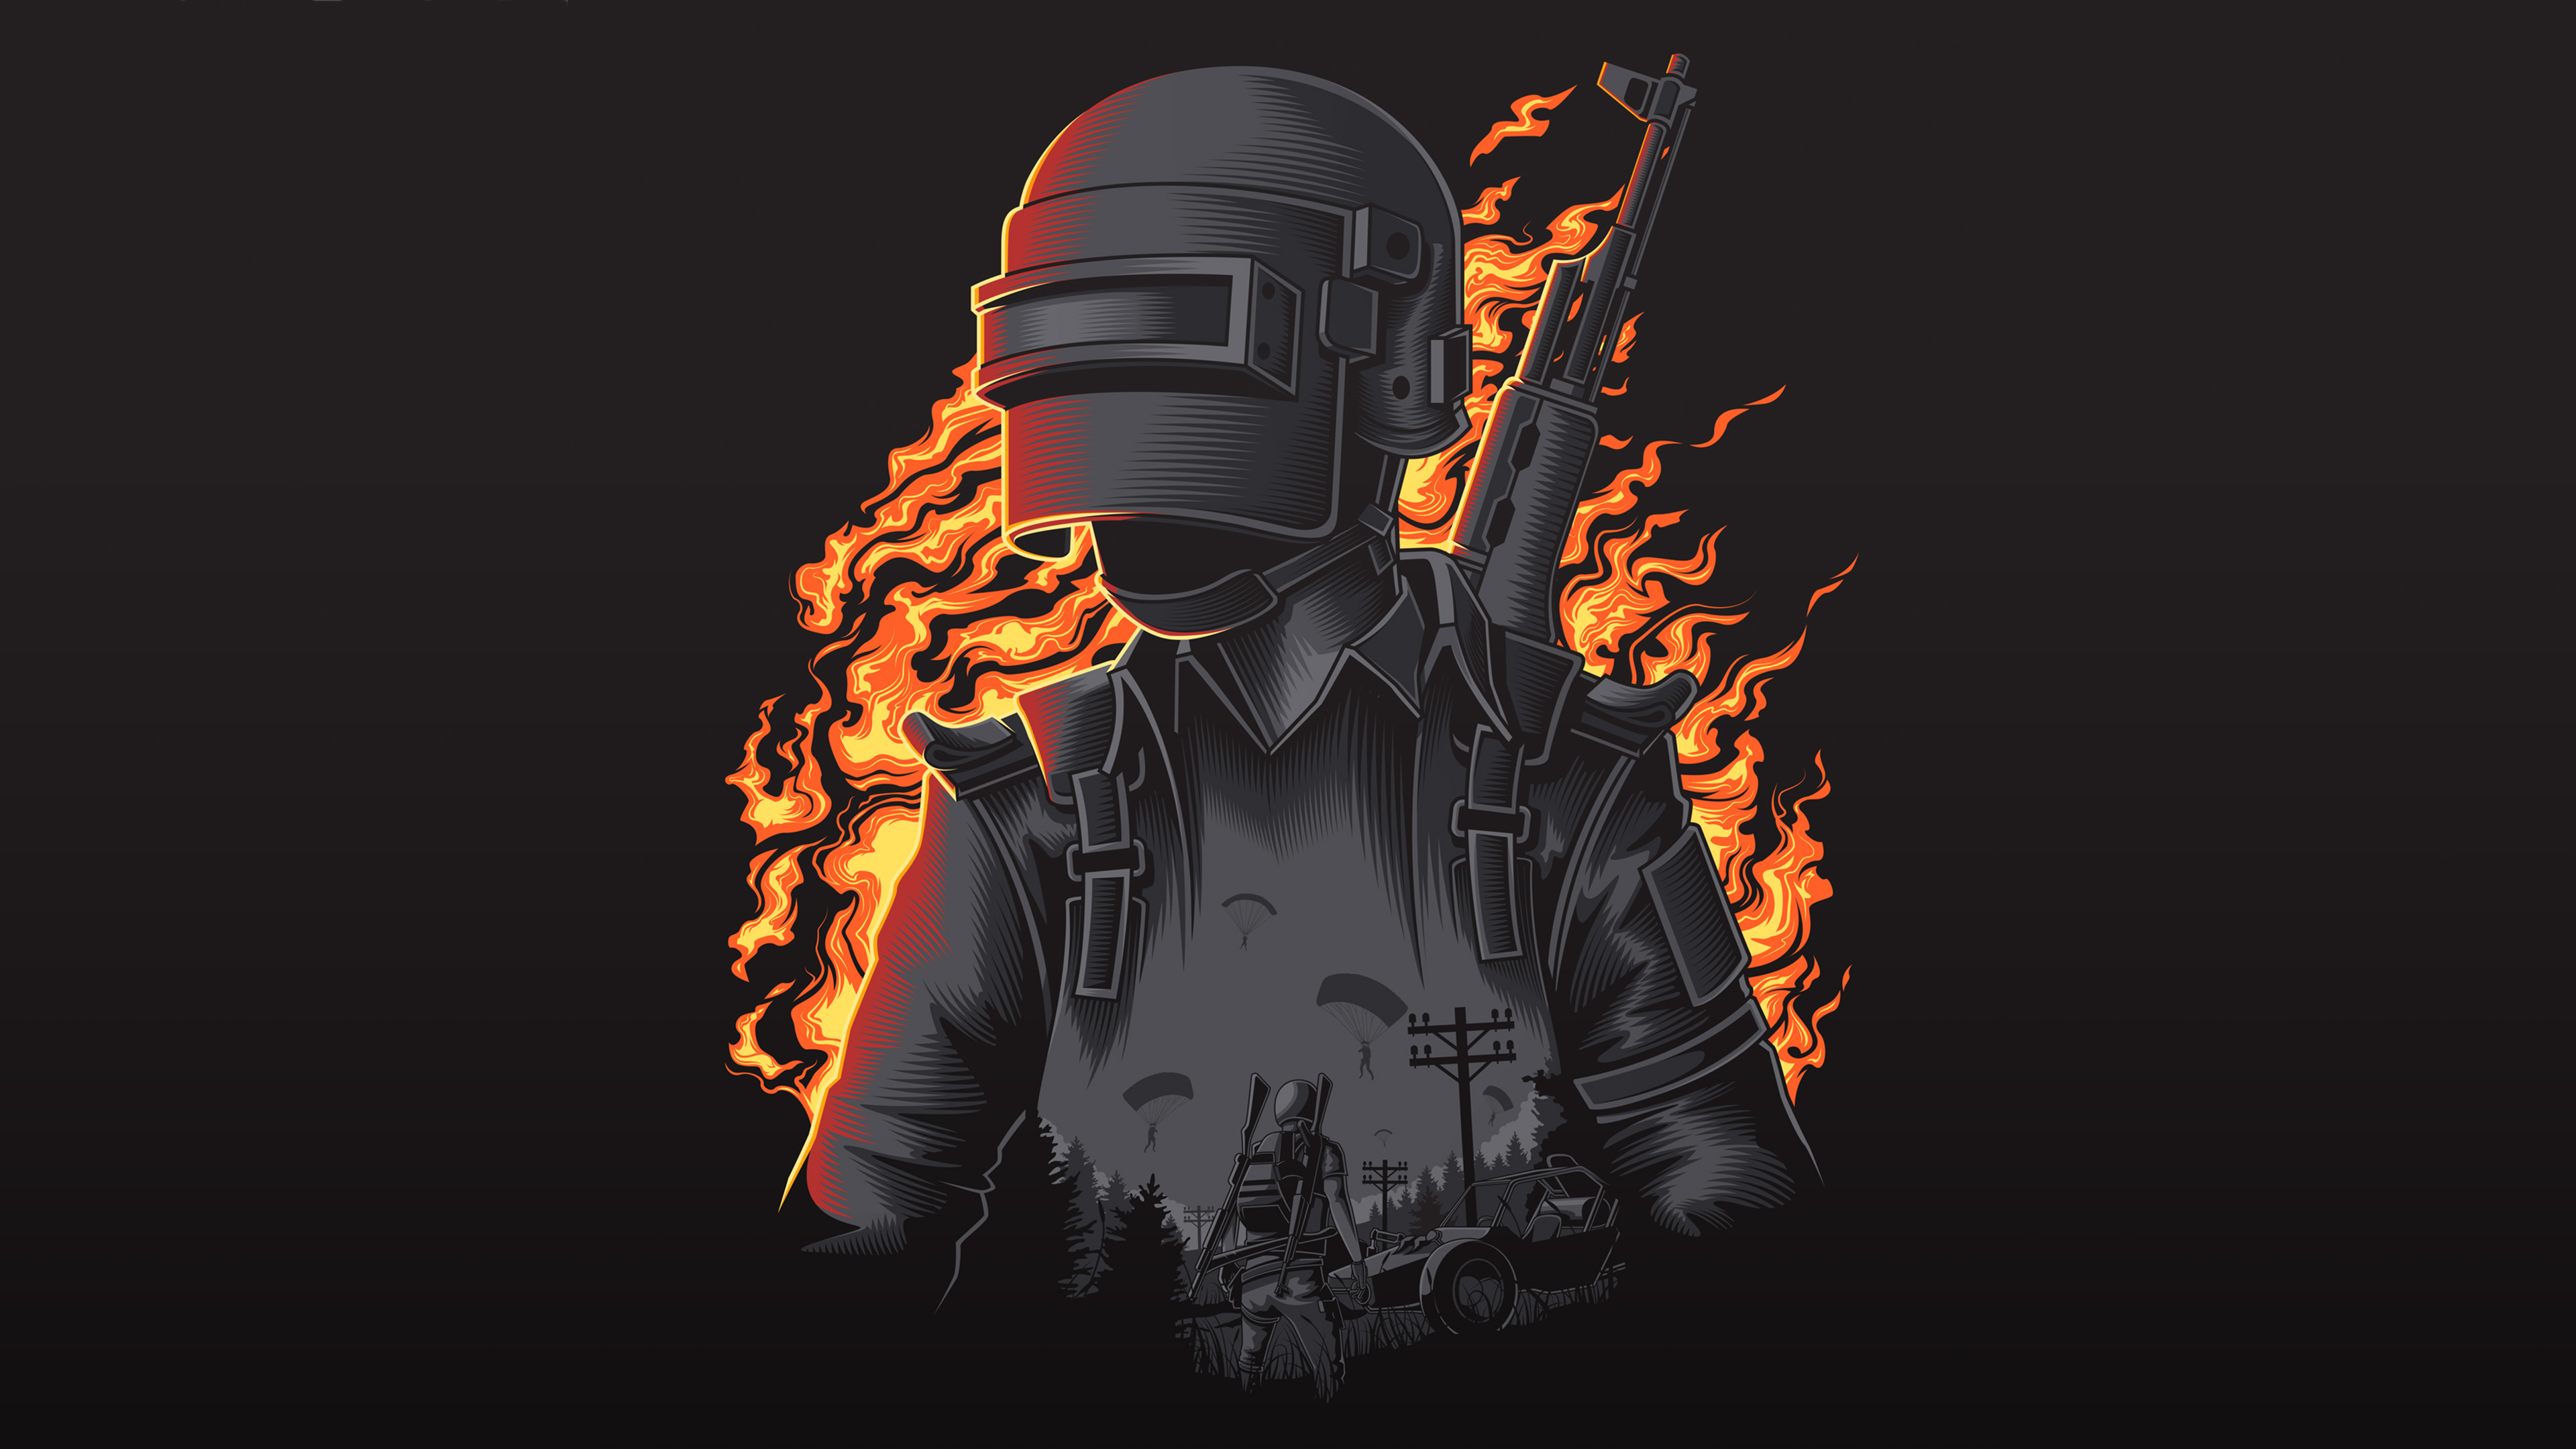 Pubg Wallpapers Free Gamers Wallpaper 1080p: 1920x1080 Pubg Illustration 4k Laptop Full HD 1080P HD 4k